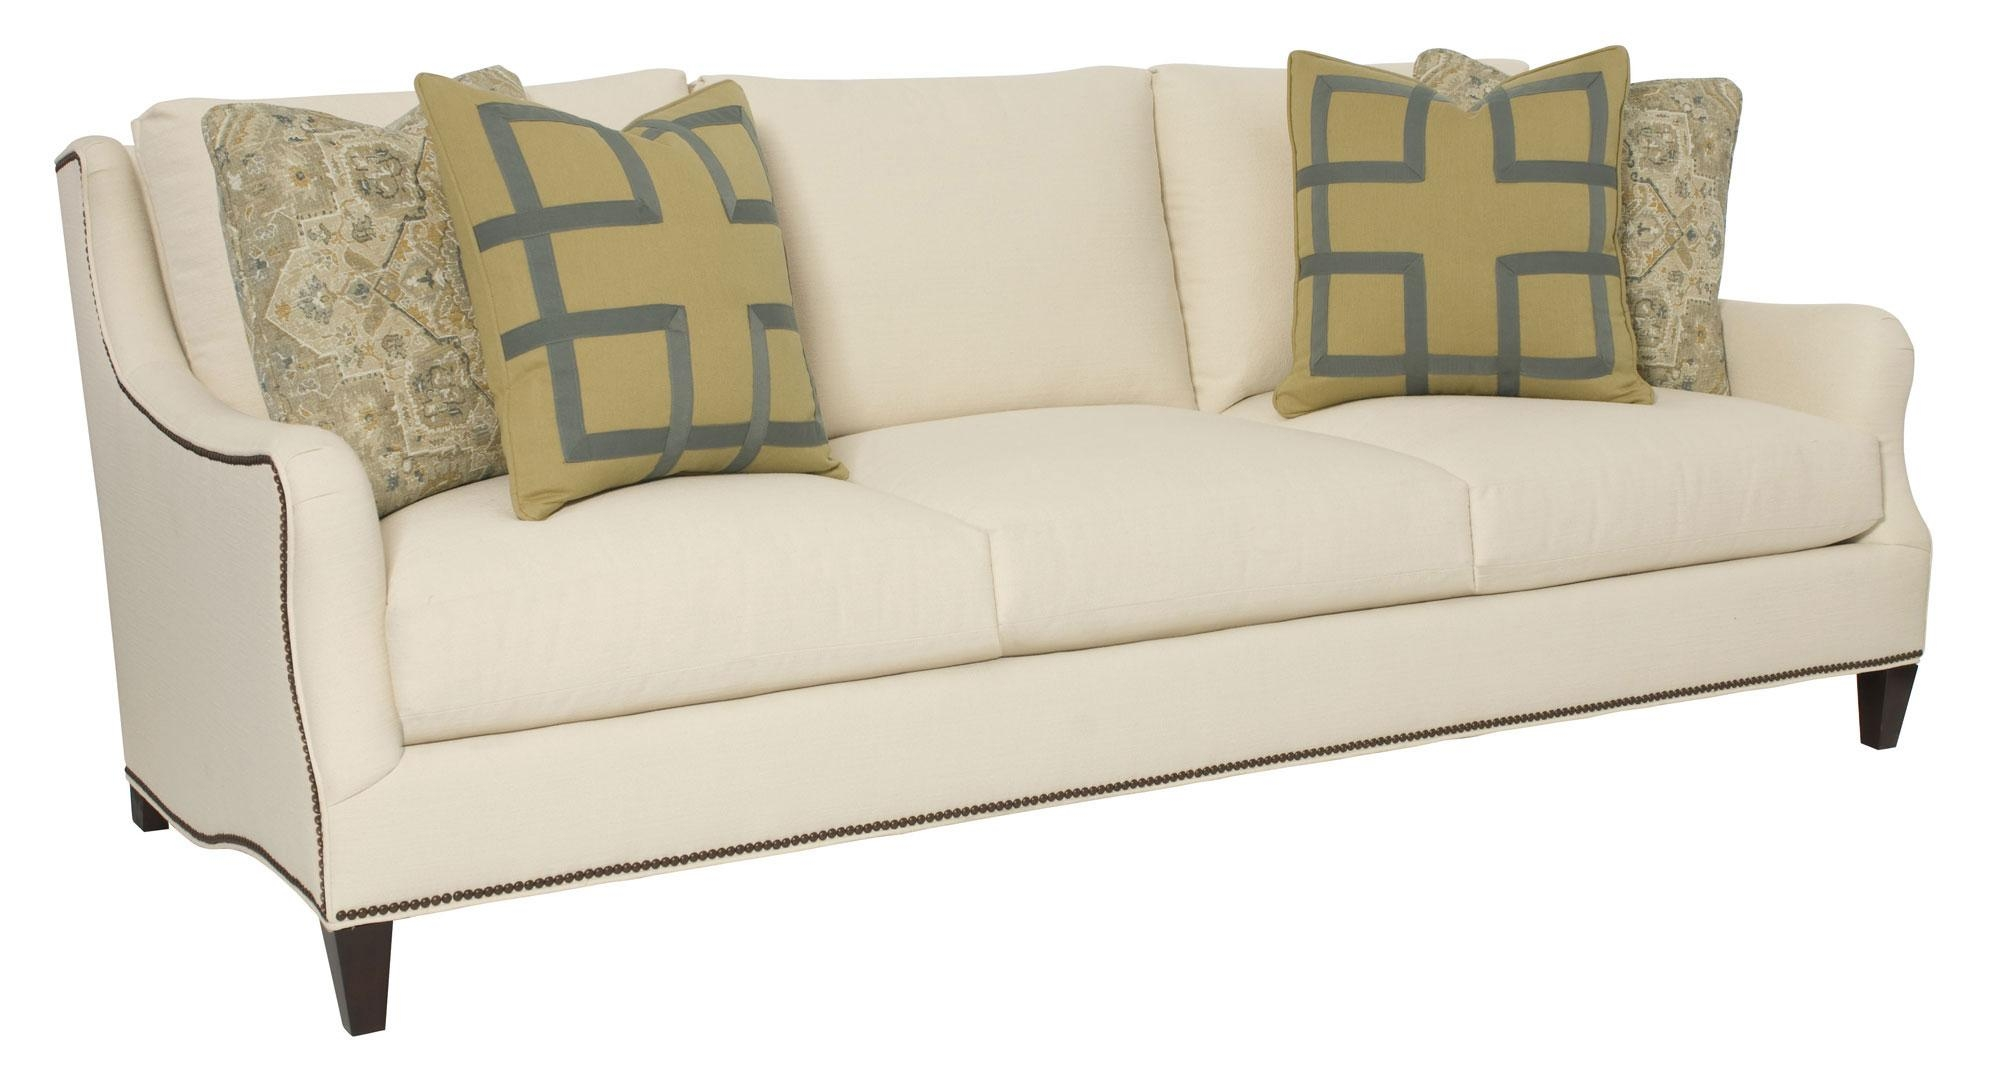 Sofas & Loveseats | Bernhardt Pertaining To Bernhardt Sofas (View 11 of 20)